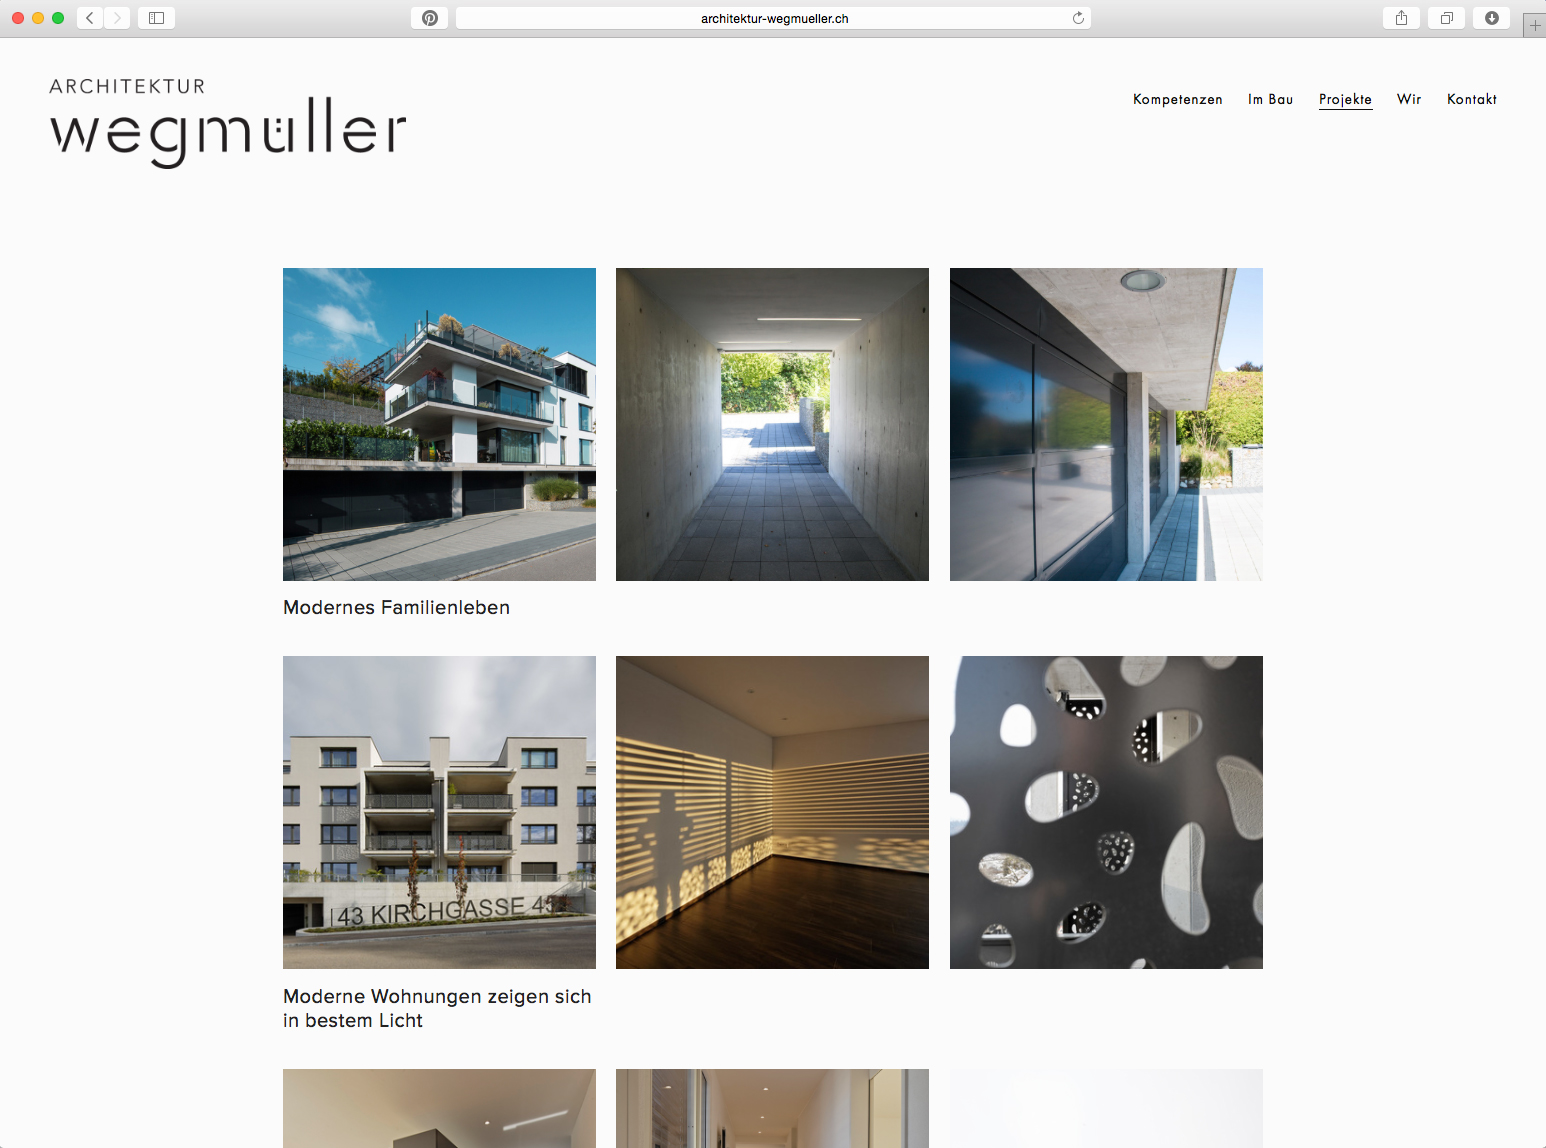 uppergrade-website-architektur-wegmueller3